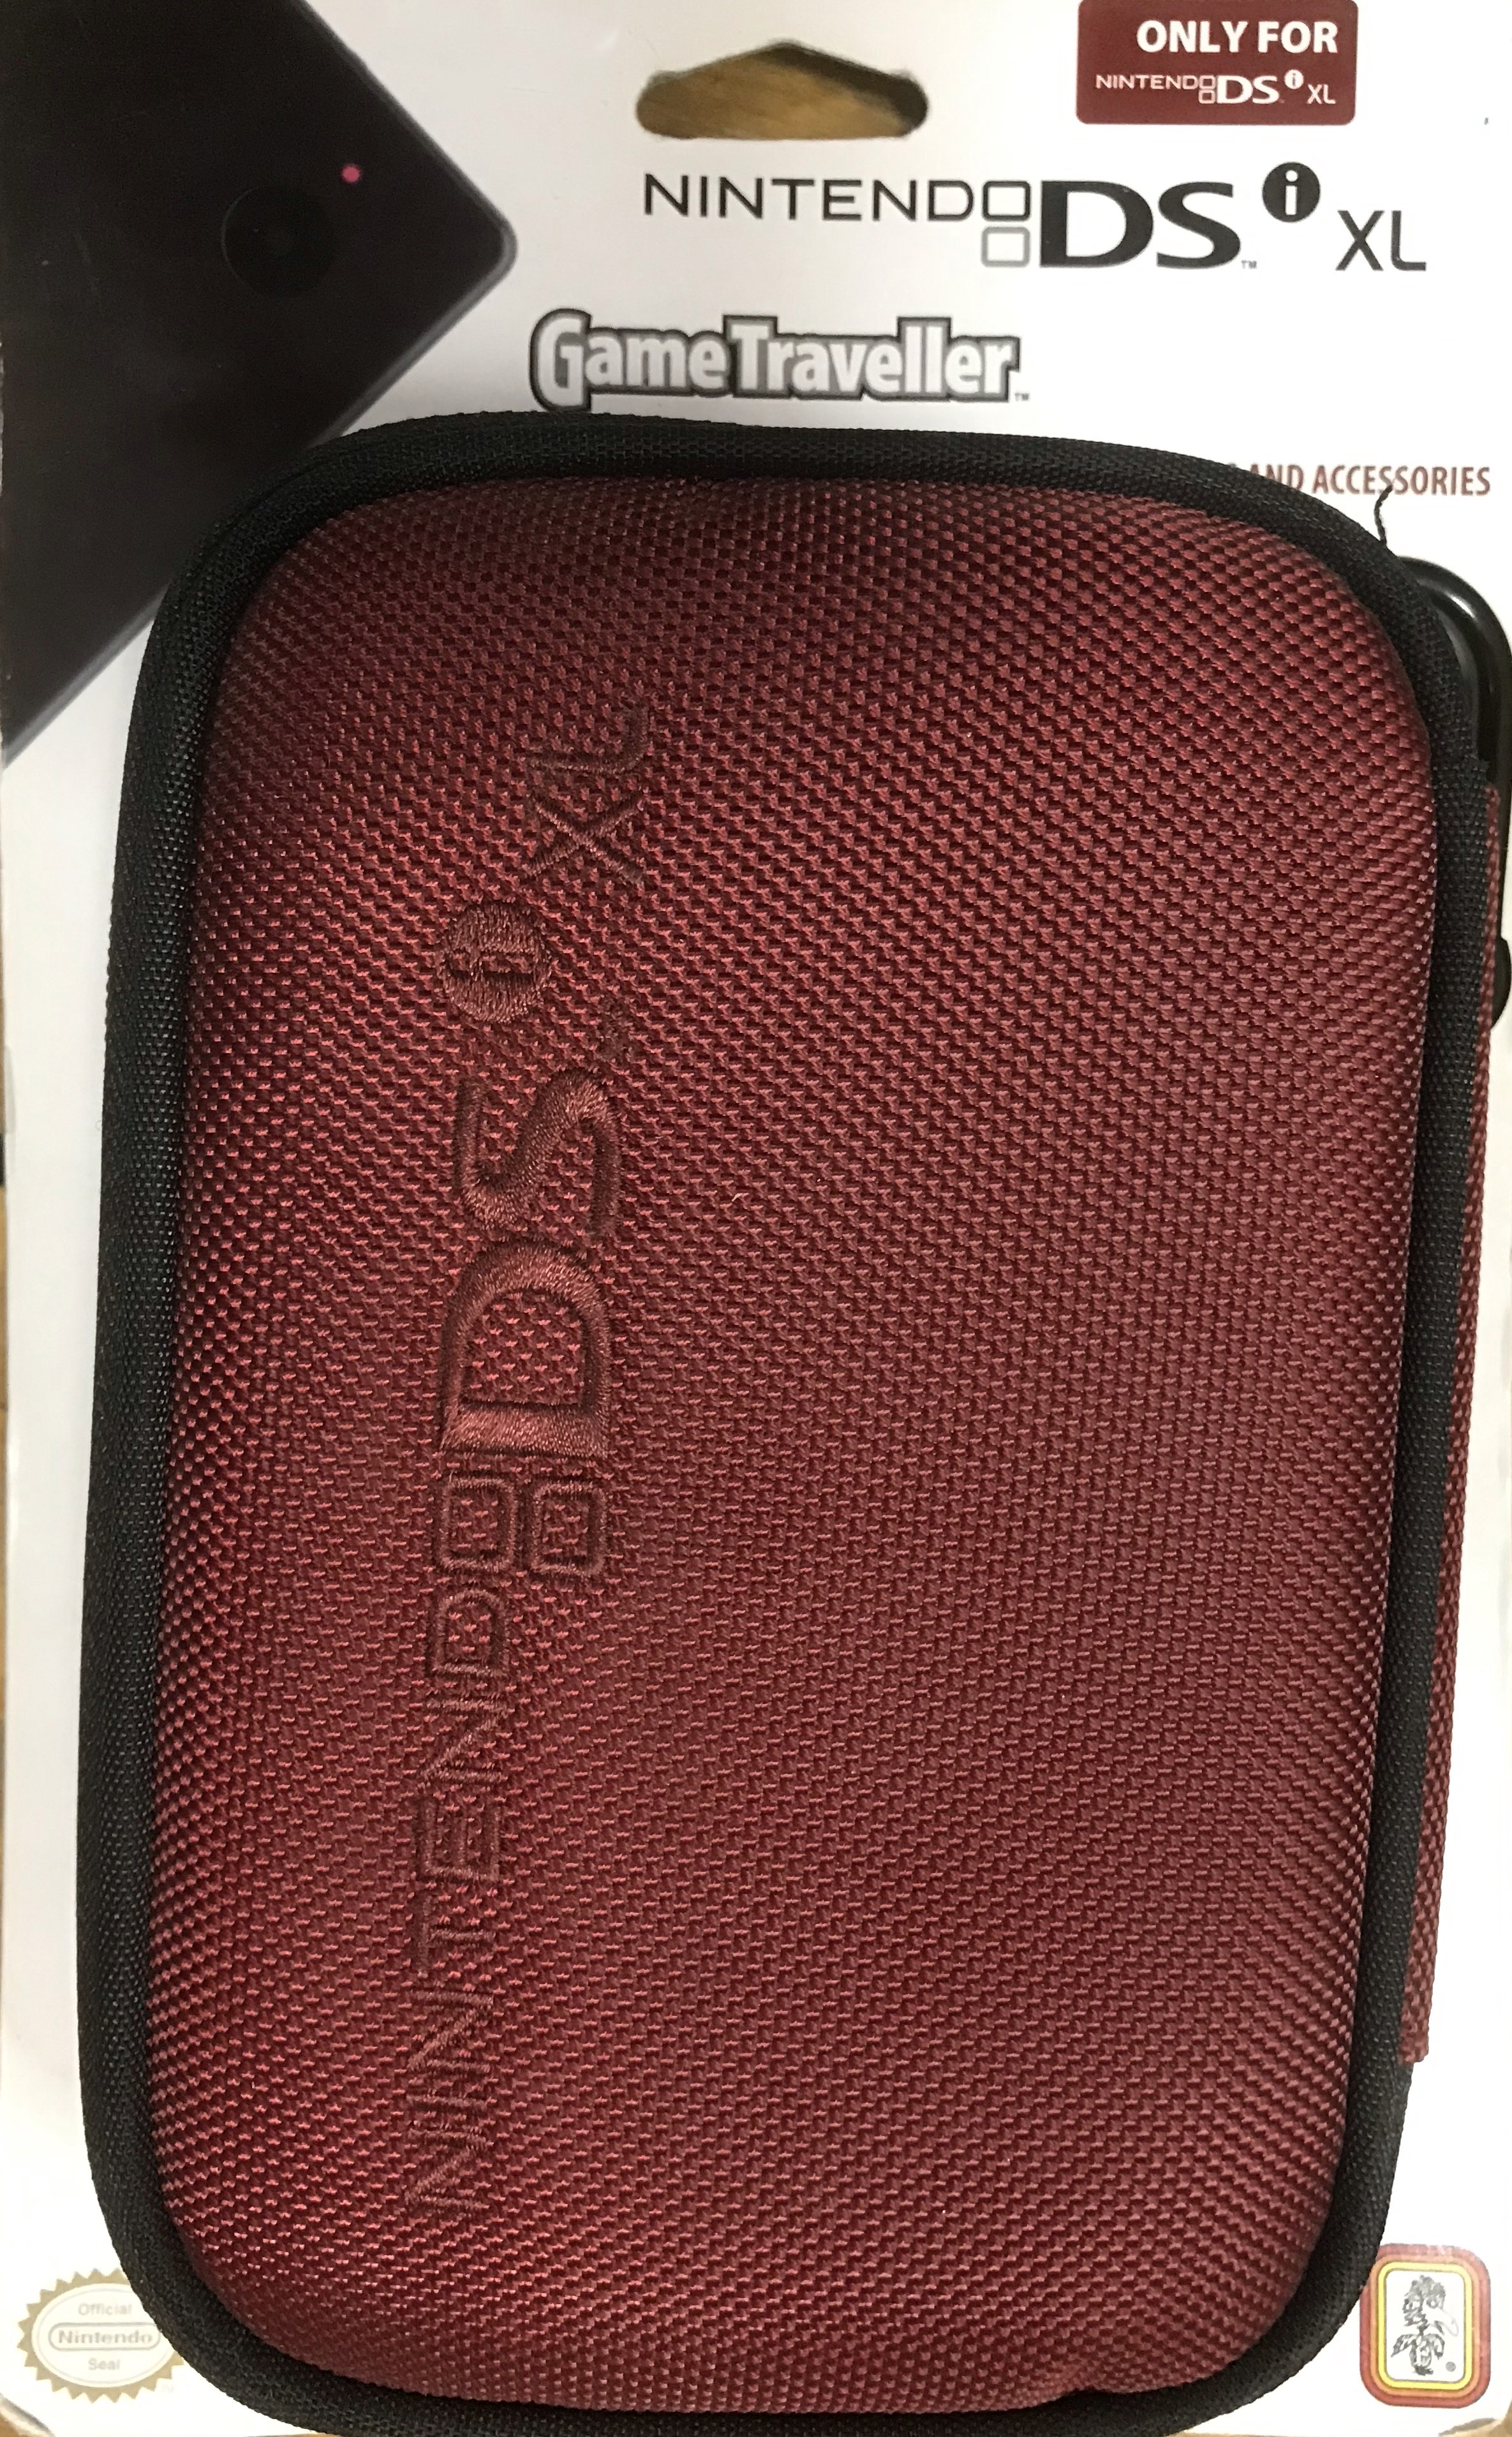 Nintendo DS XL Game Traveller (Piros)